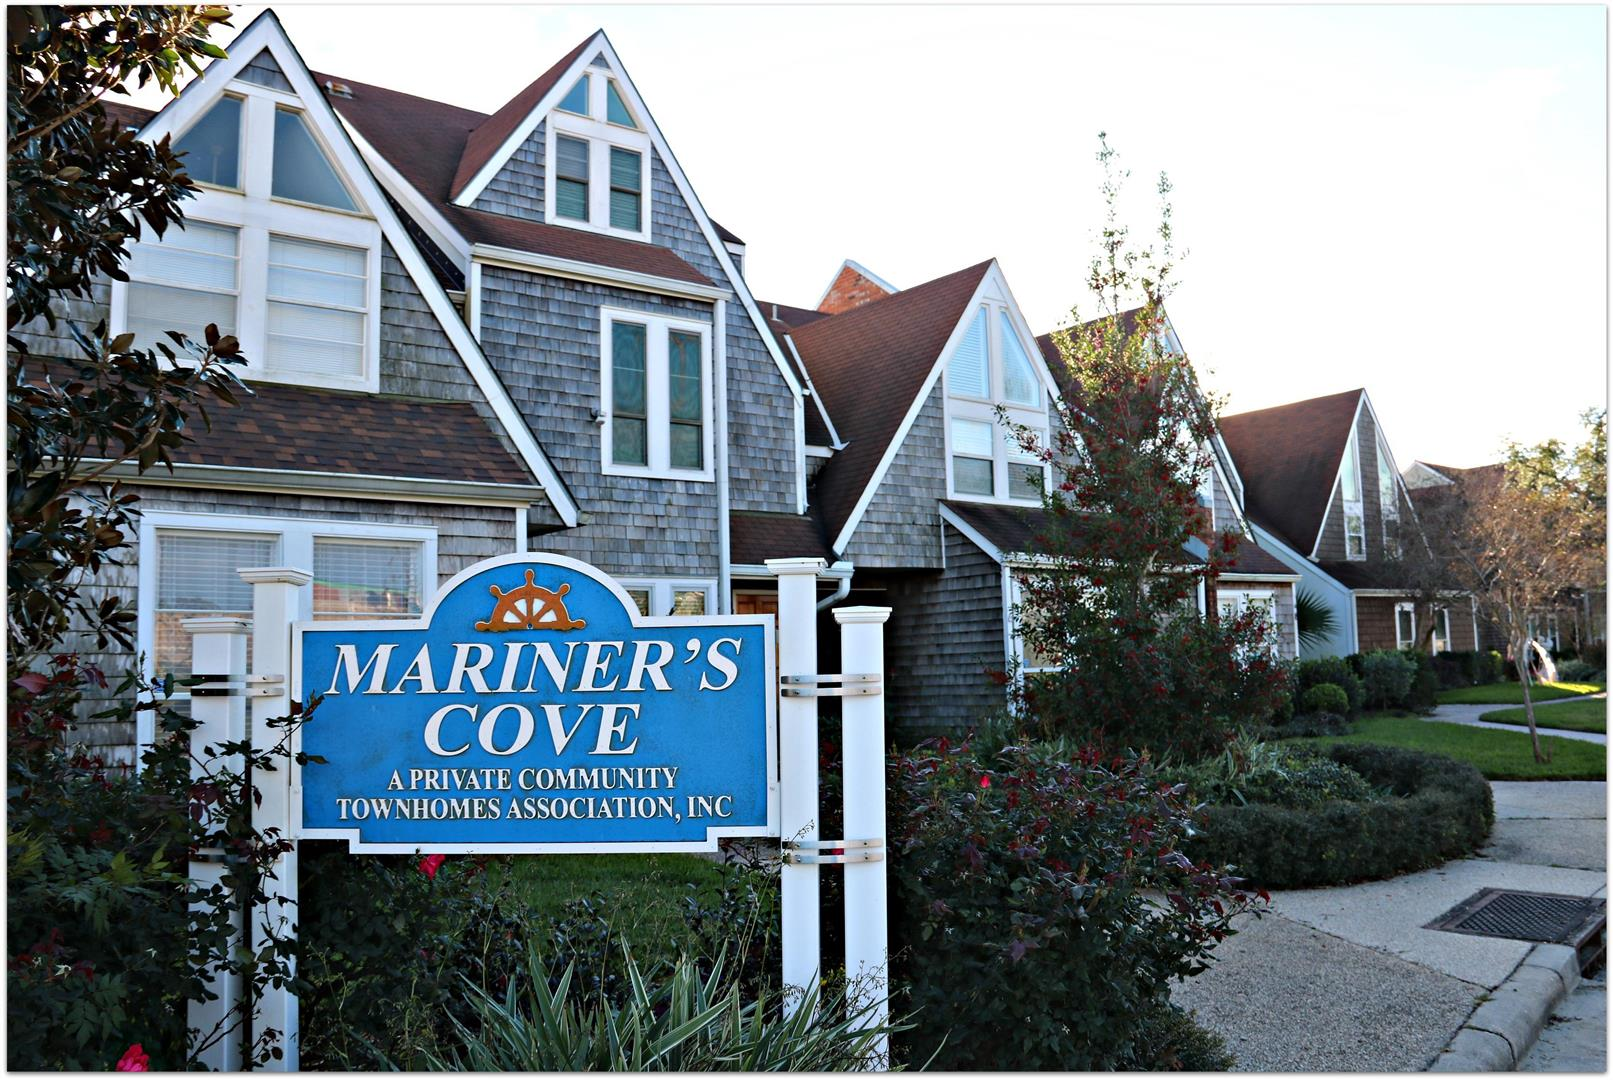 MarinersCoveTownhomes,Lakeview.jpg